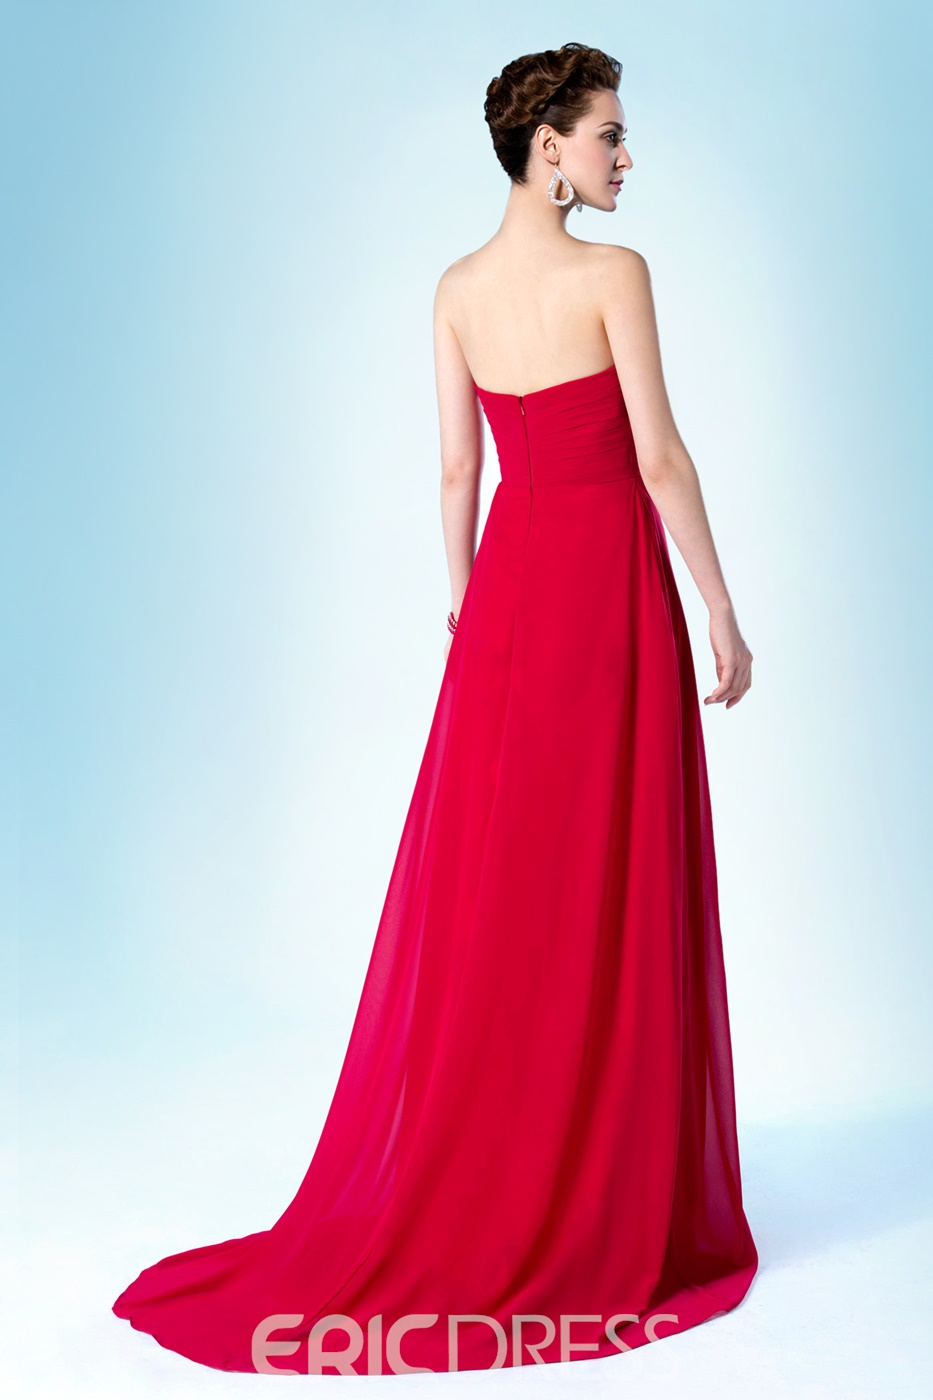 Concise Pretty Strapless Sweetheart Neckline Sweep/Brush Bridesmaid Dress